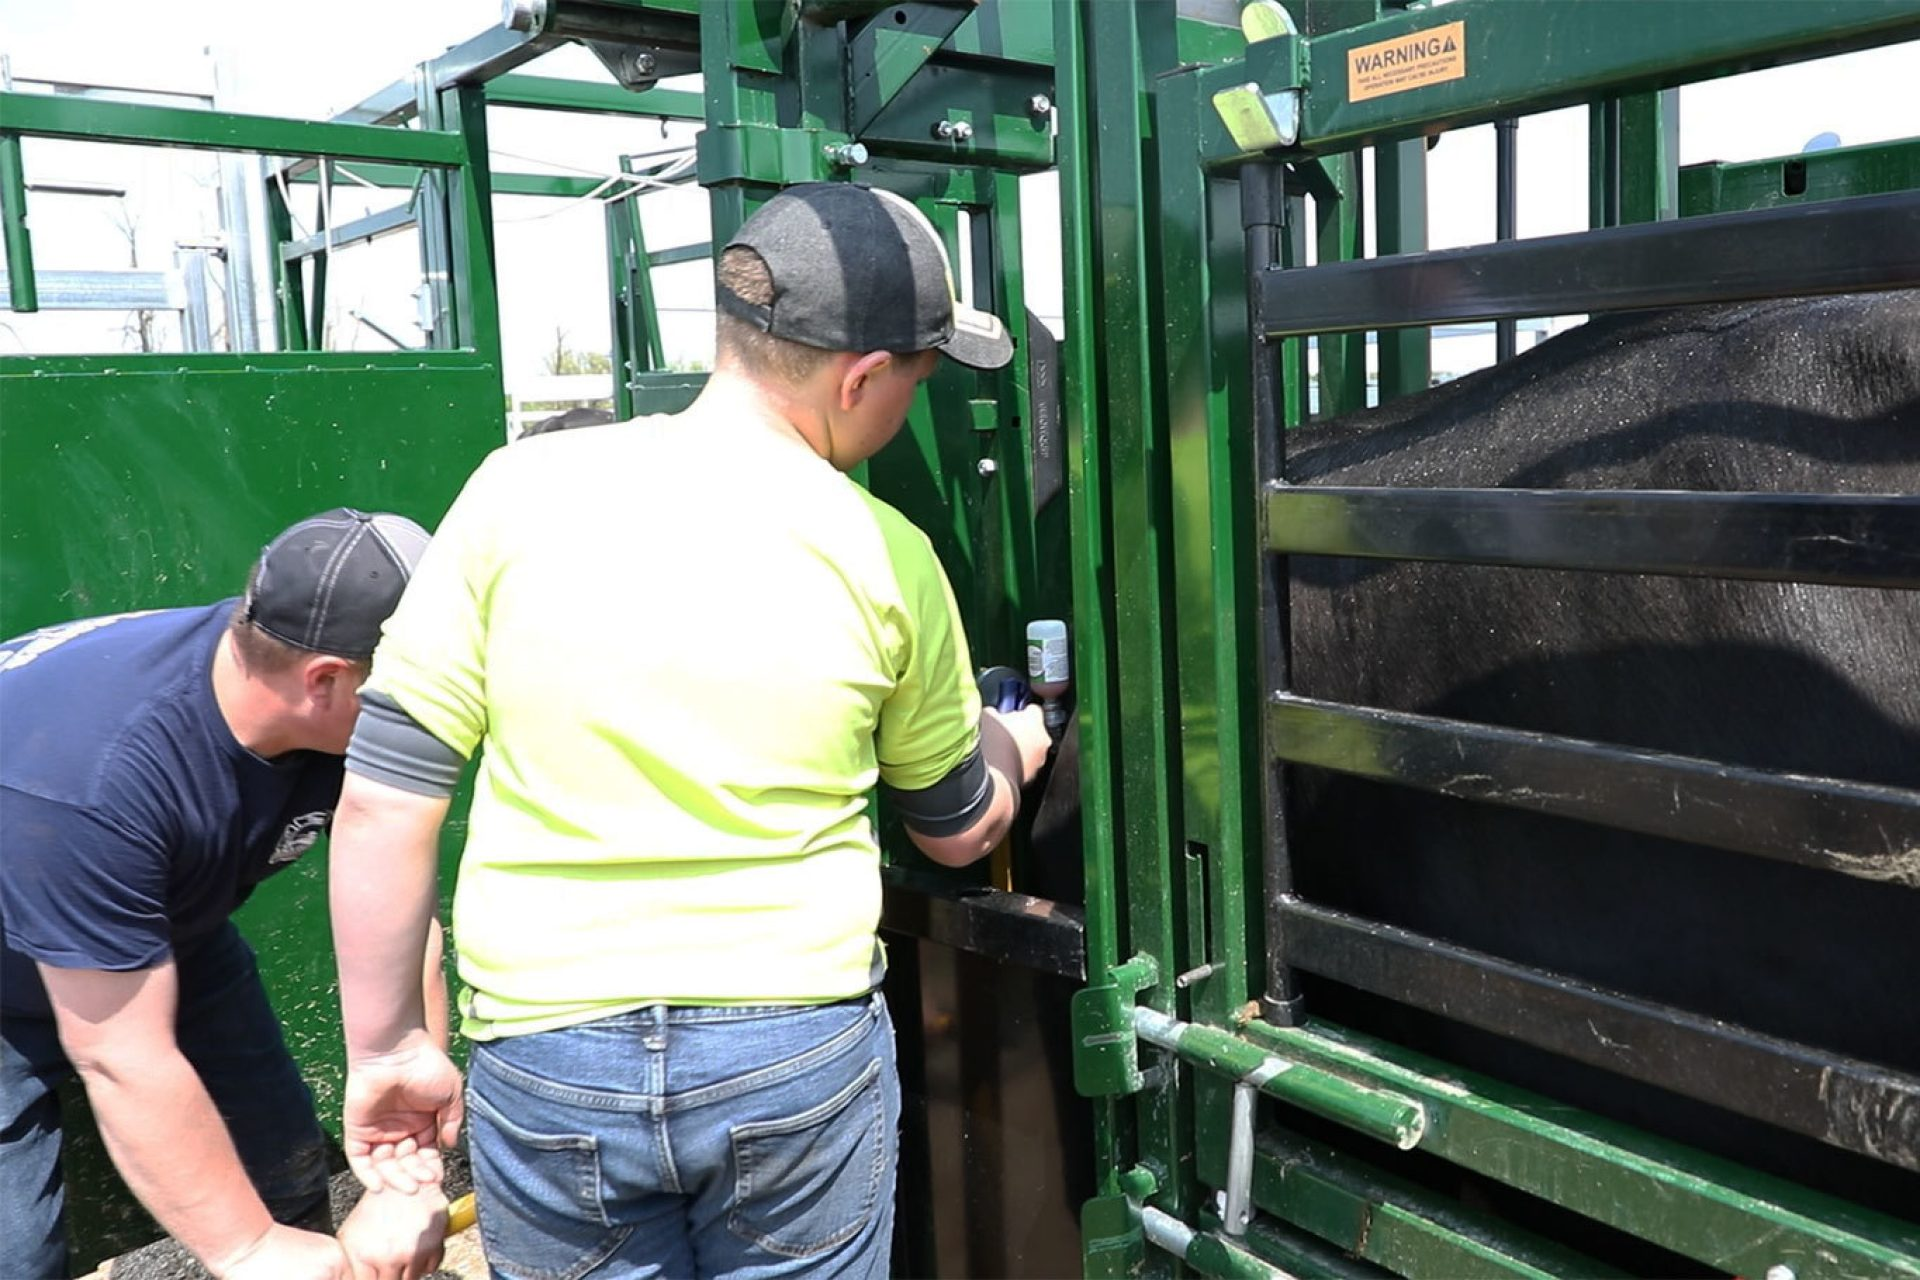 Father and Son Vaccinating Cattle